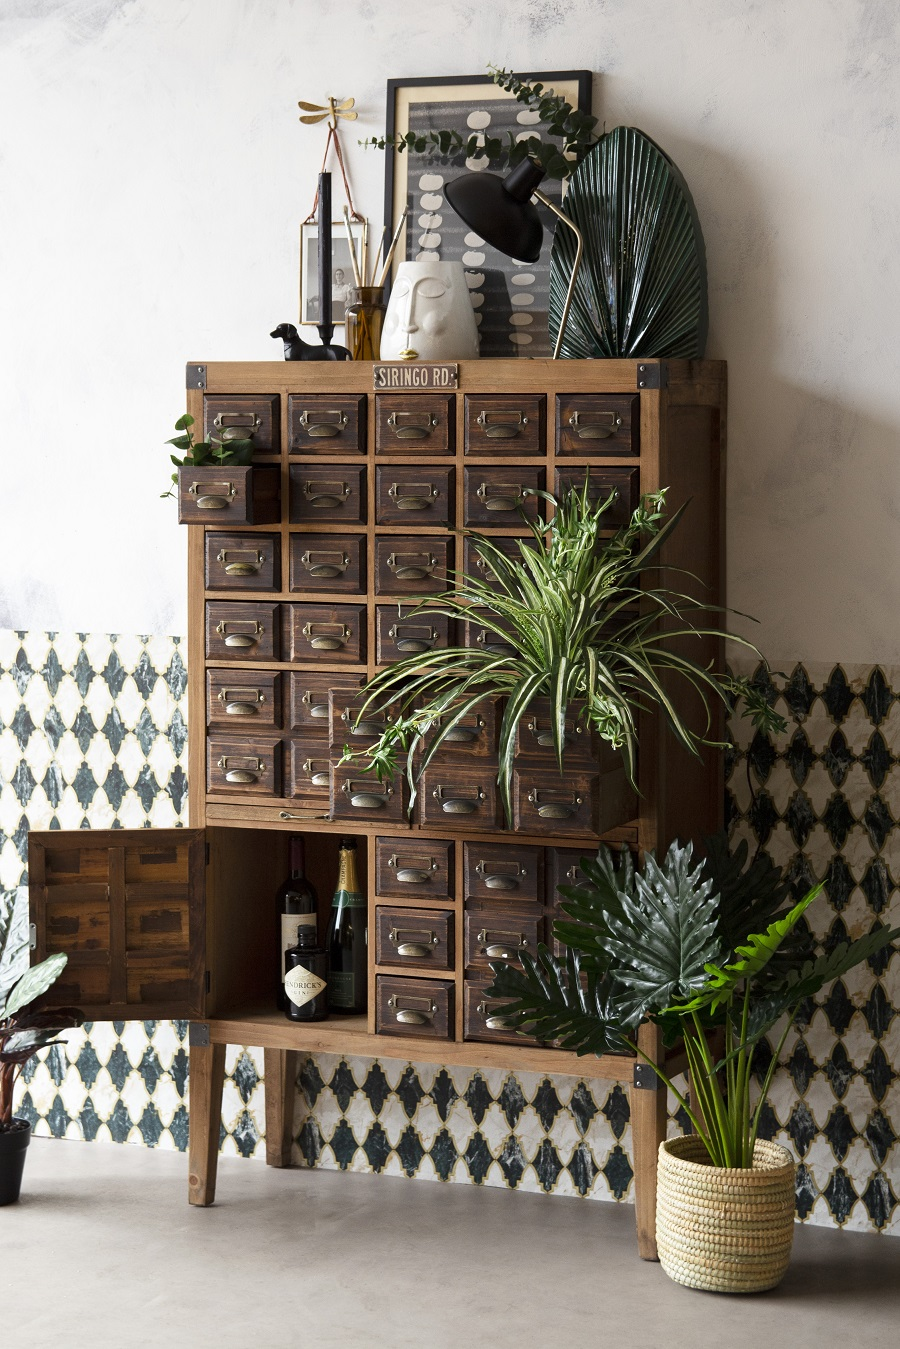 Stylish Ways to Add Industrial Inspired Furniture to the Home